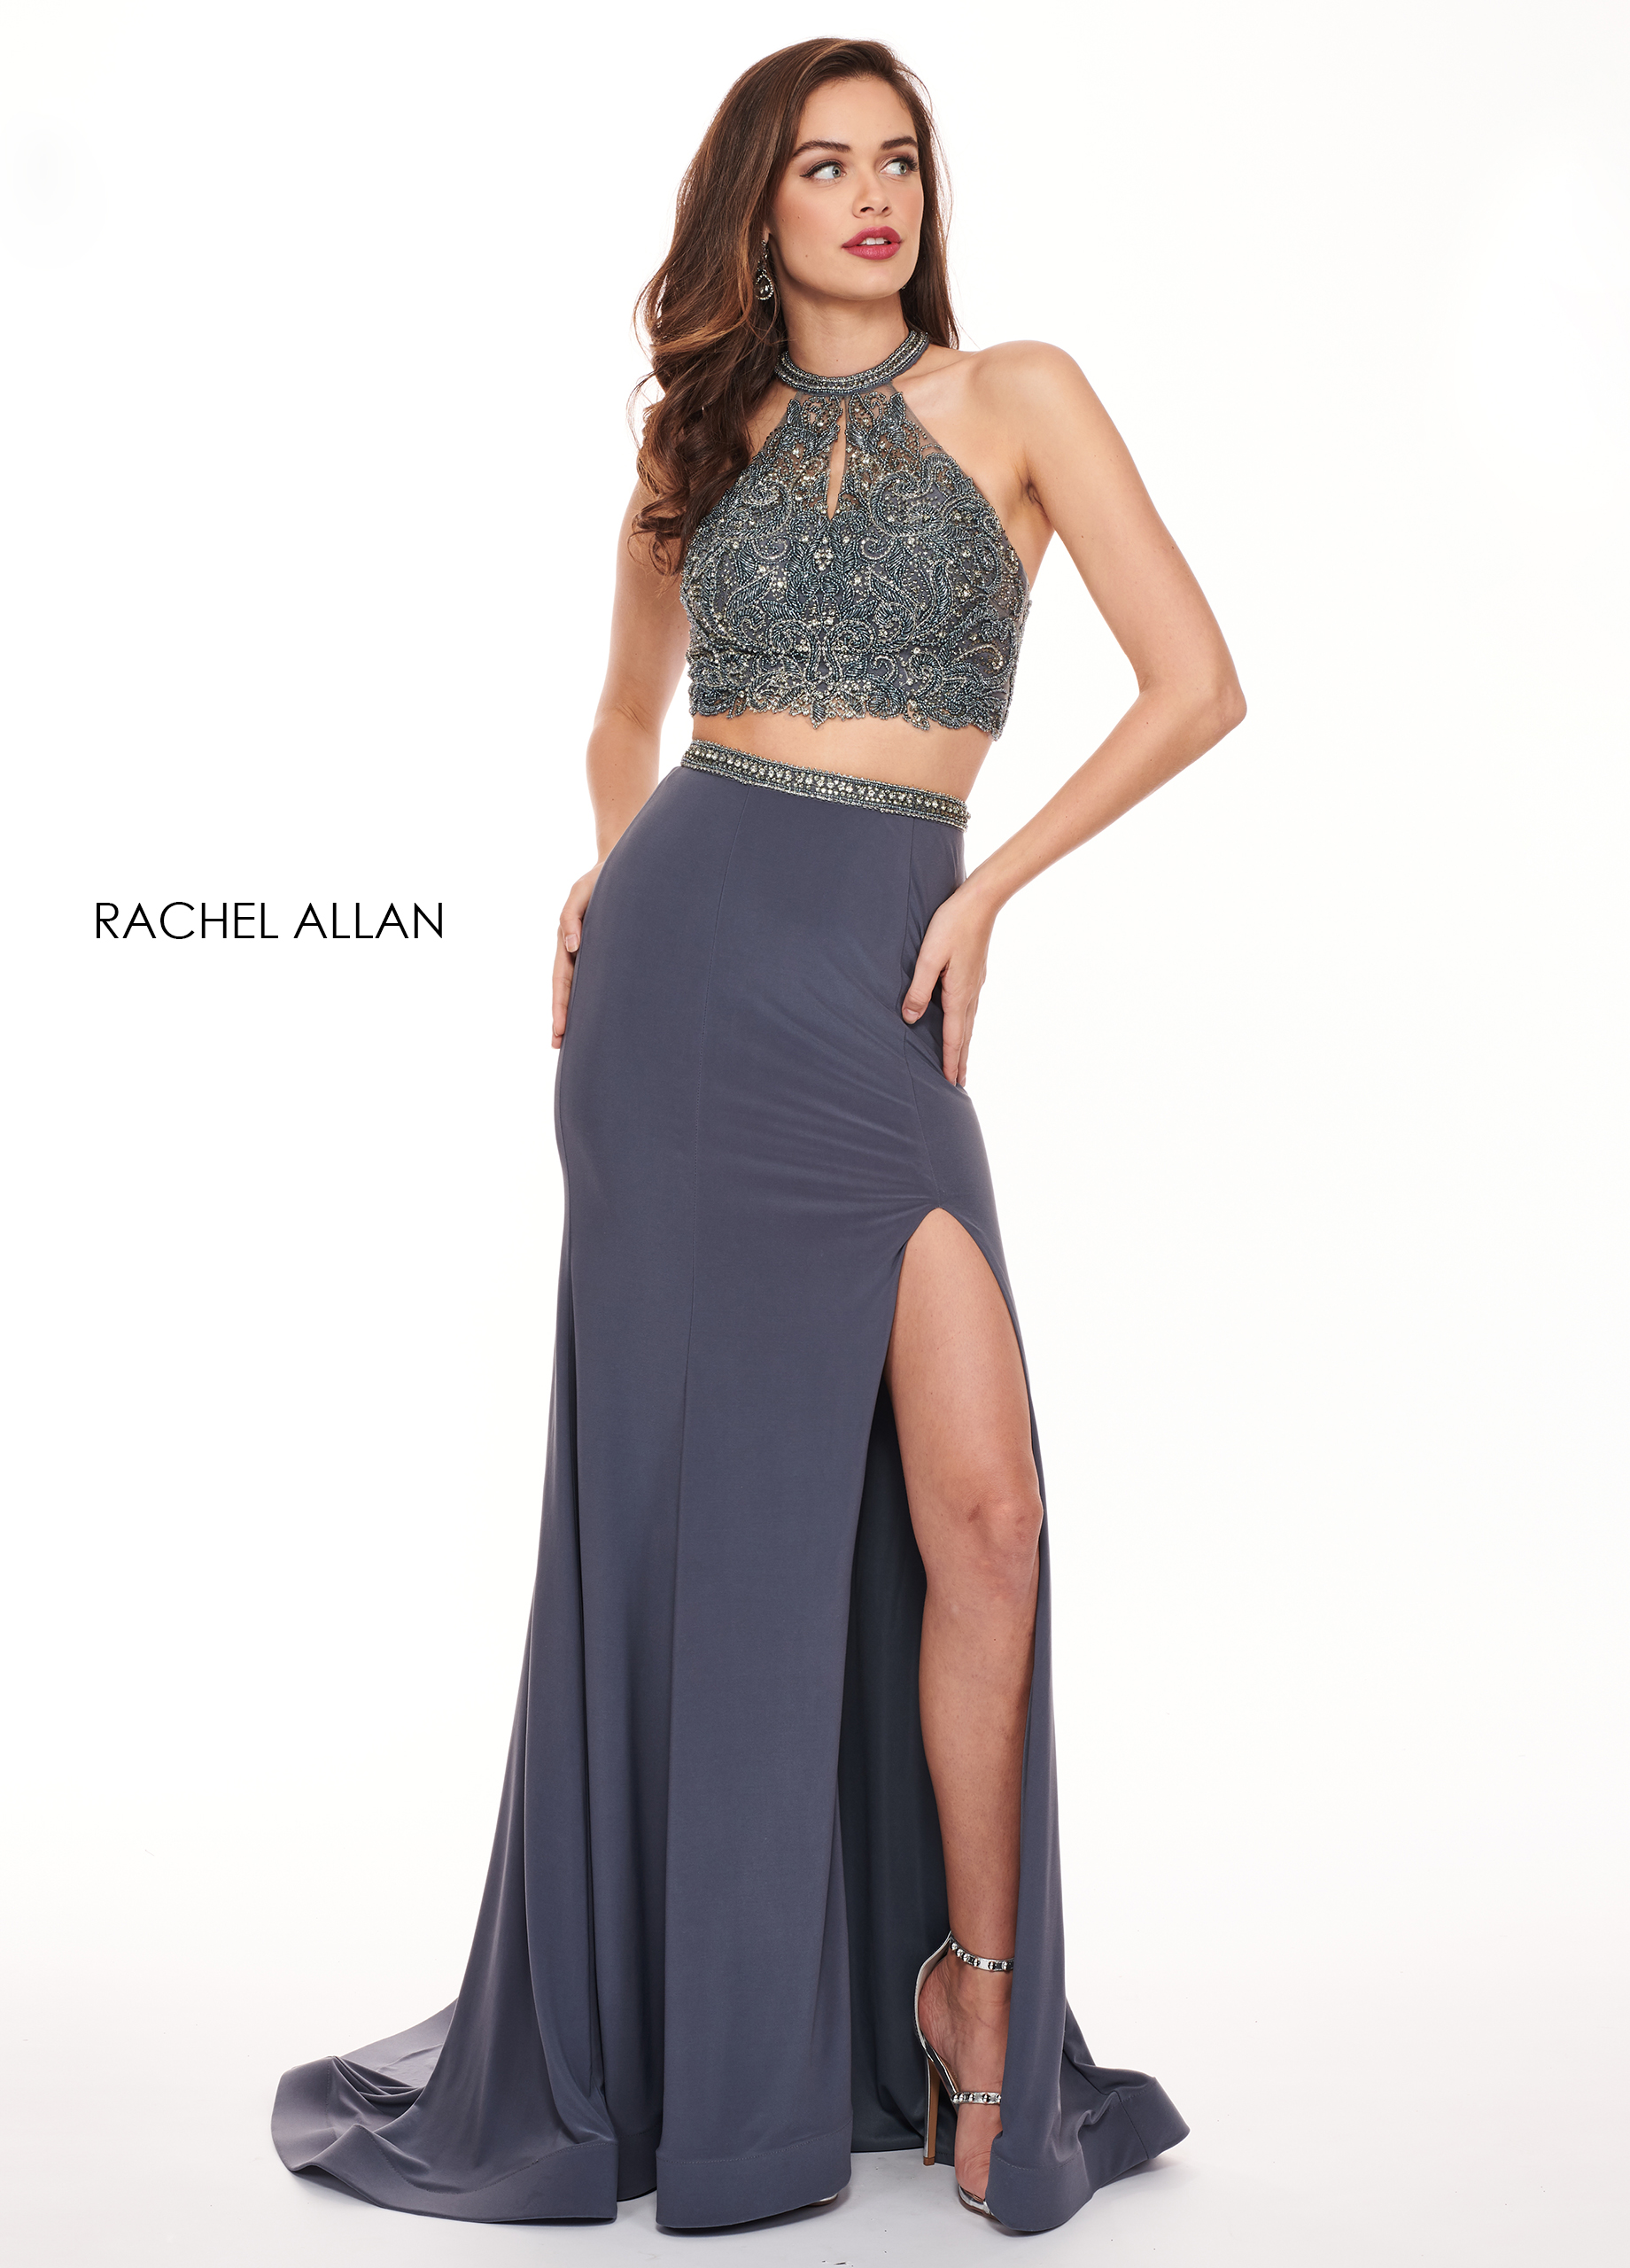 Halter Fit & Flare Prom Dresses in Grey Color